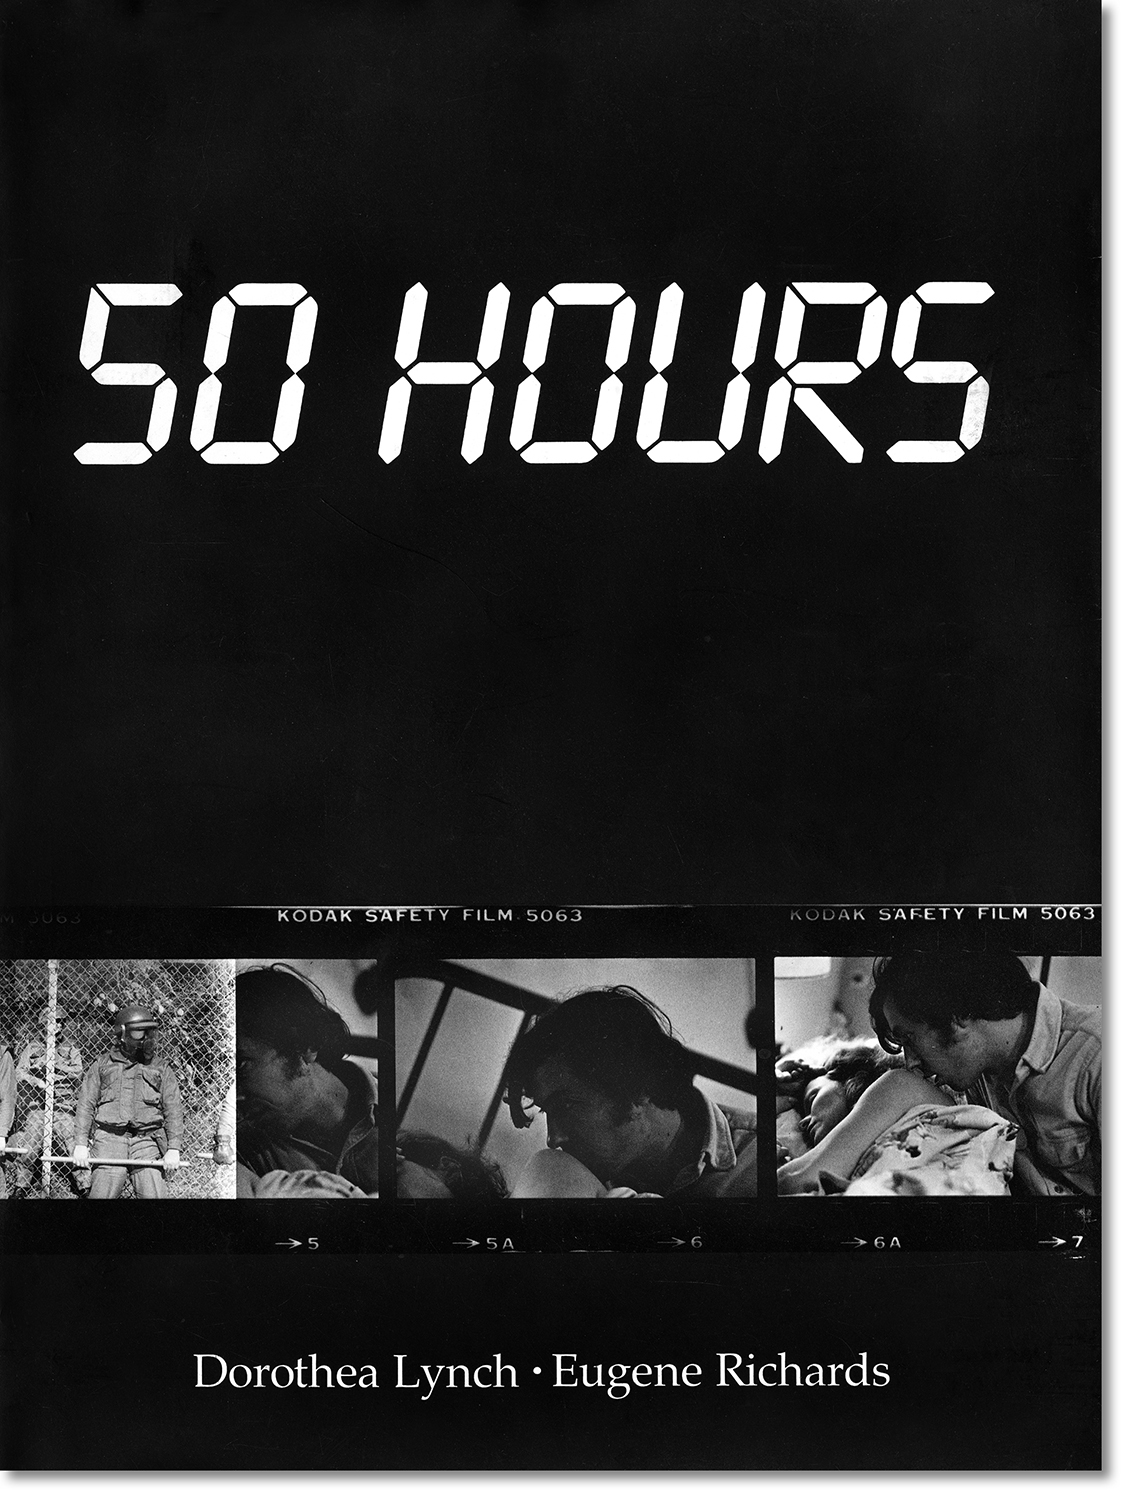 50 Hours   is a seemingly incongruouscollision of worlds: a violentanti-nuclear demonstration and the birth of a baby.  Many Voices Press, 1983